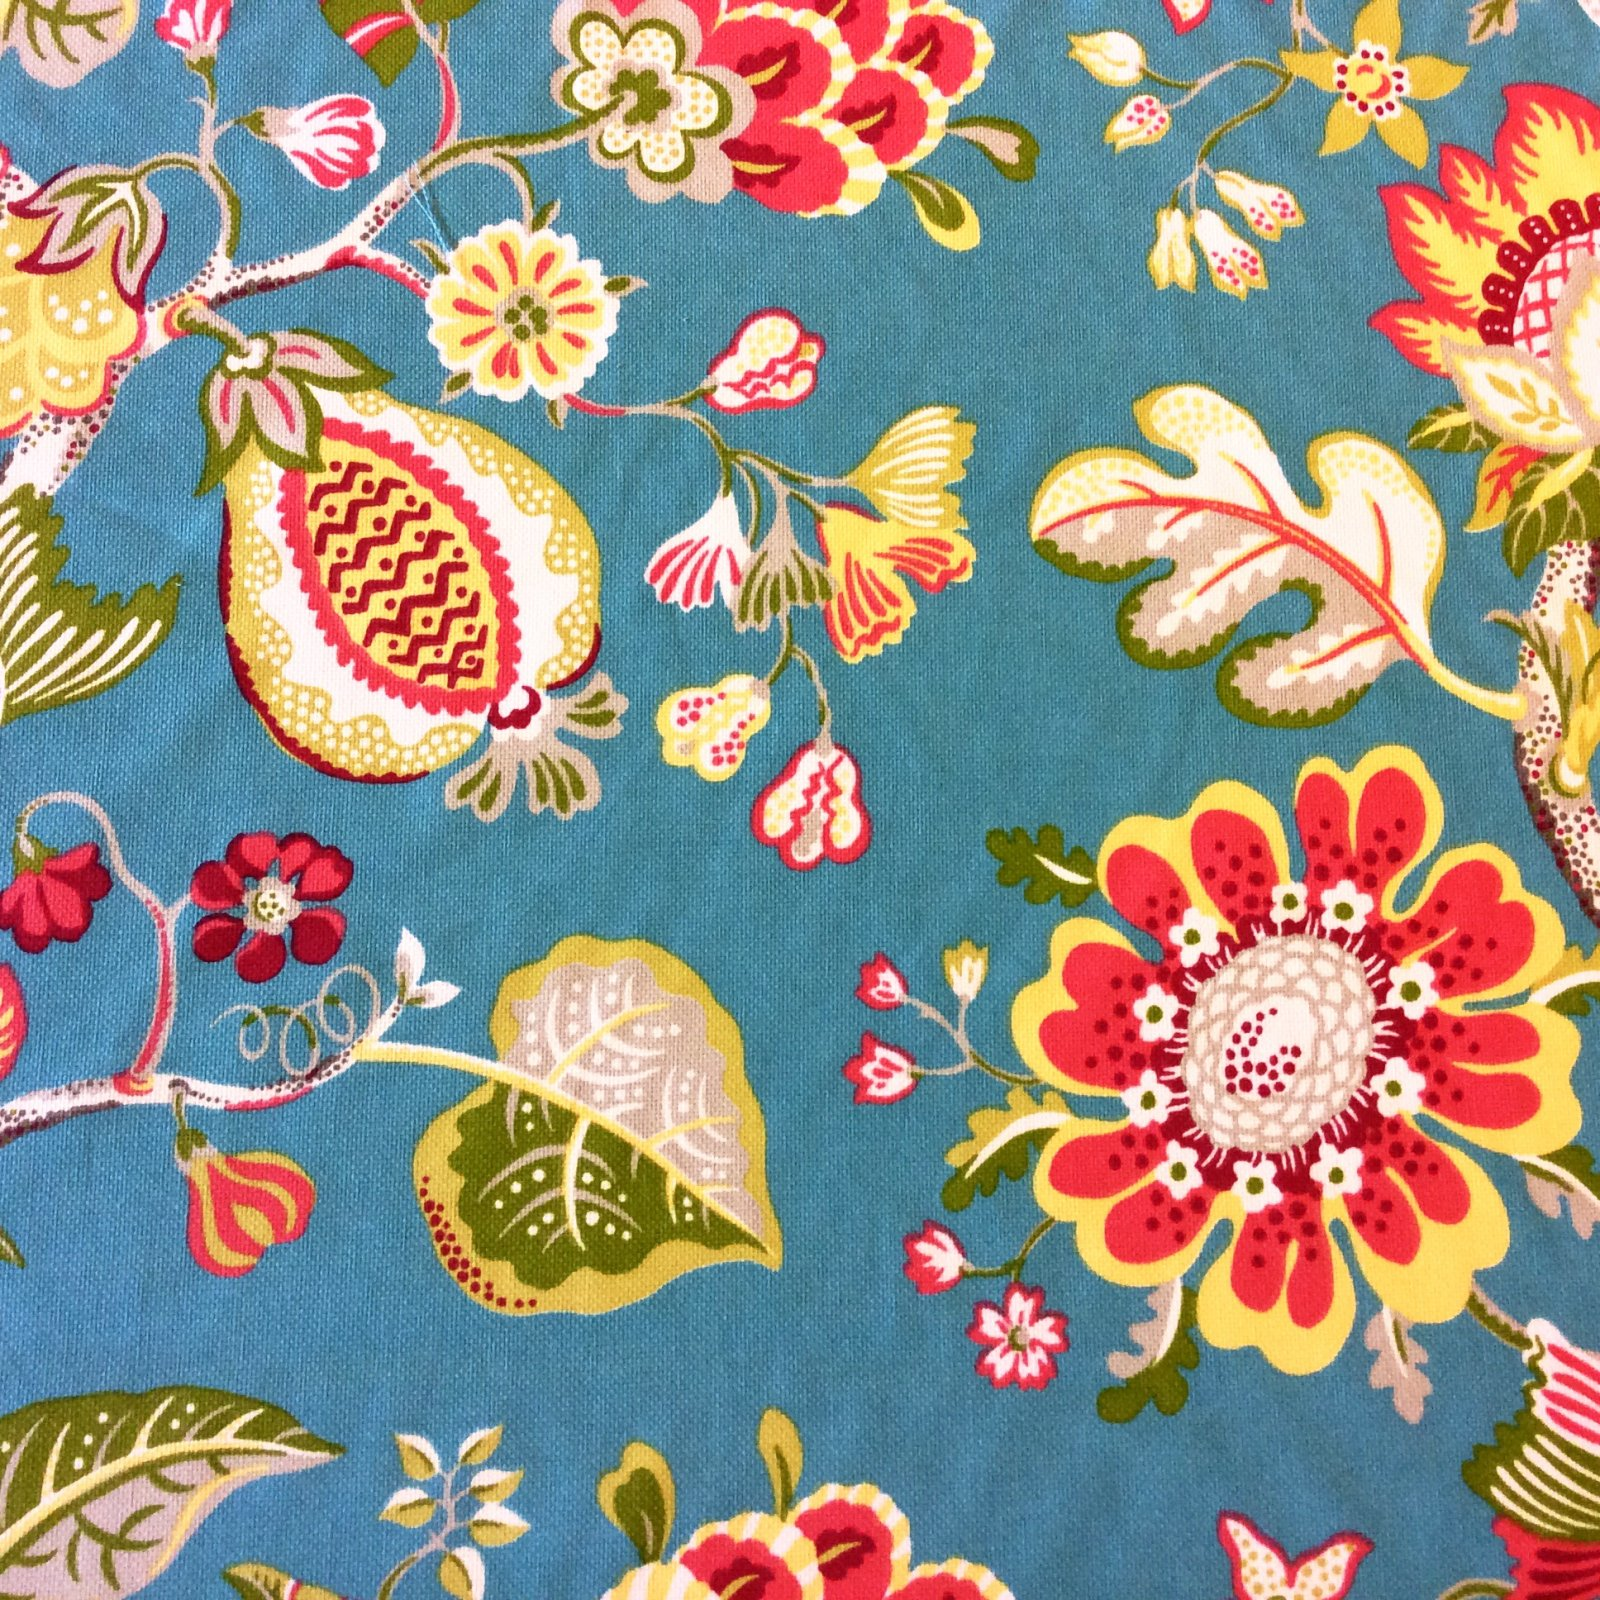 Floral Bold Tropical Fruit Floral Woven Outdoor Indoor Home Decor Fabric Sm26